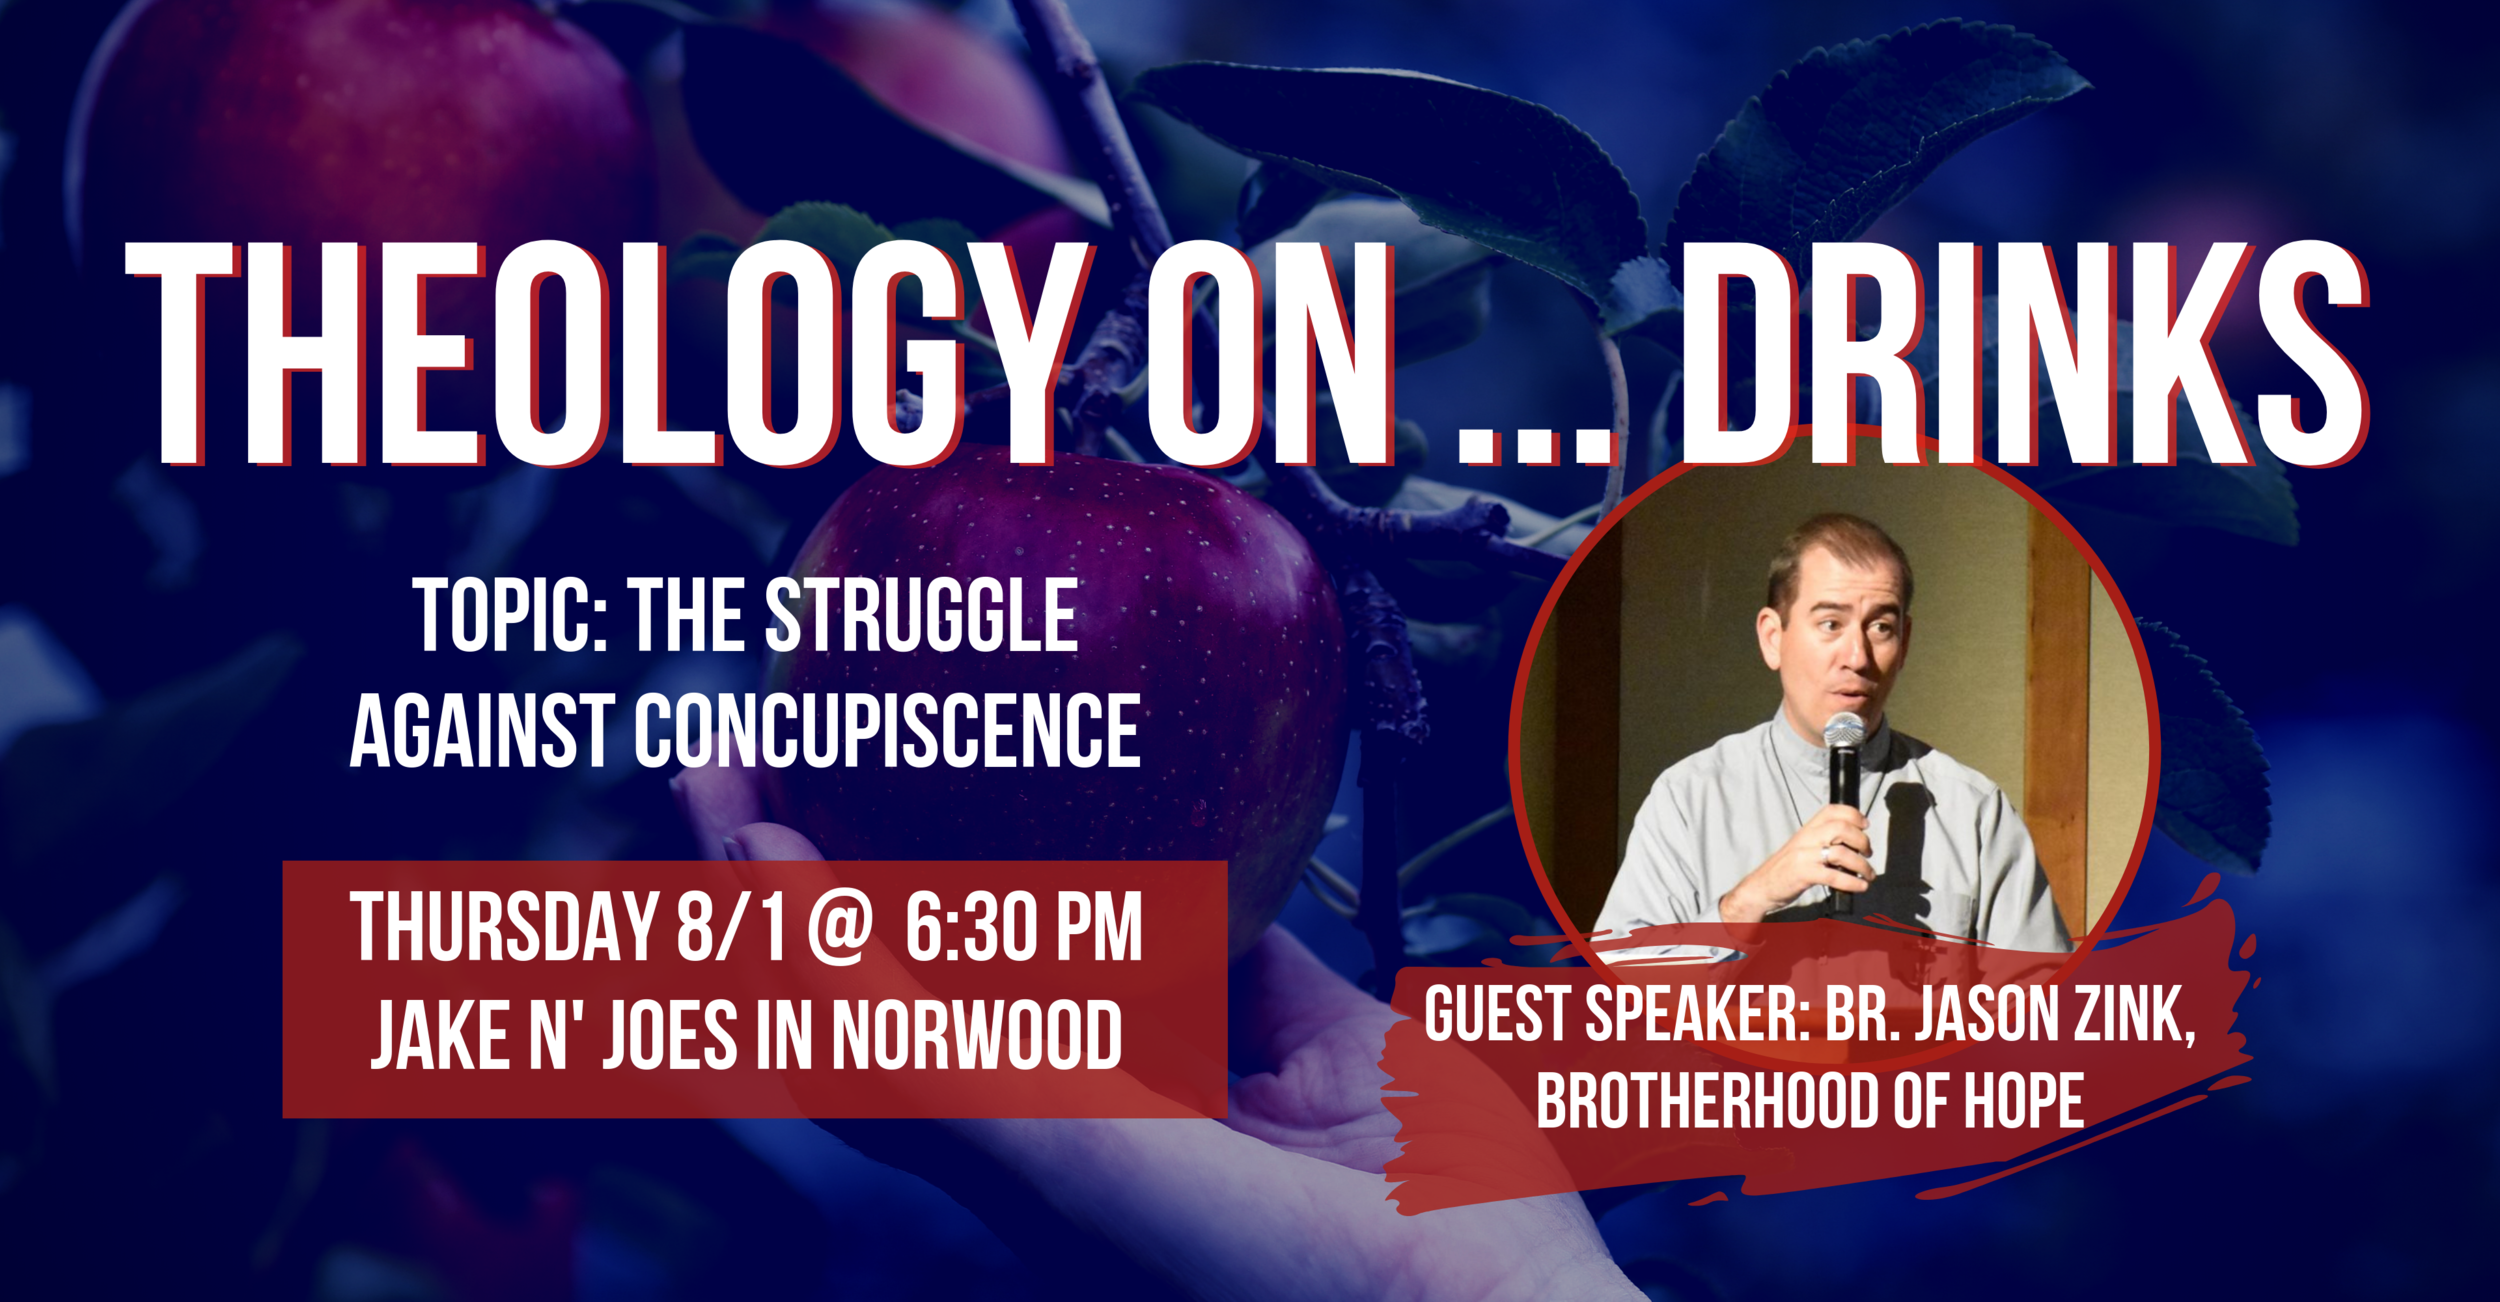 Theology on... Drinks